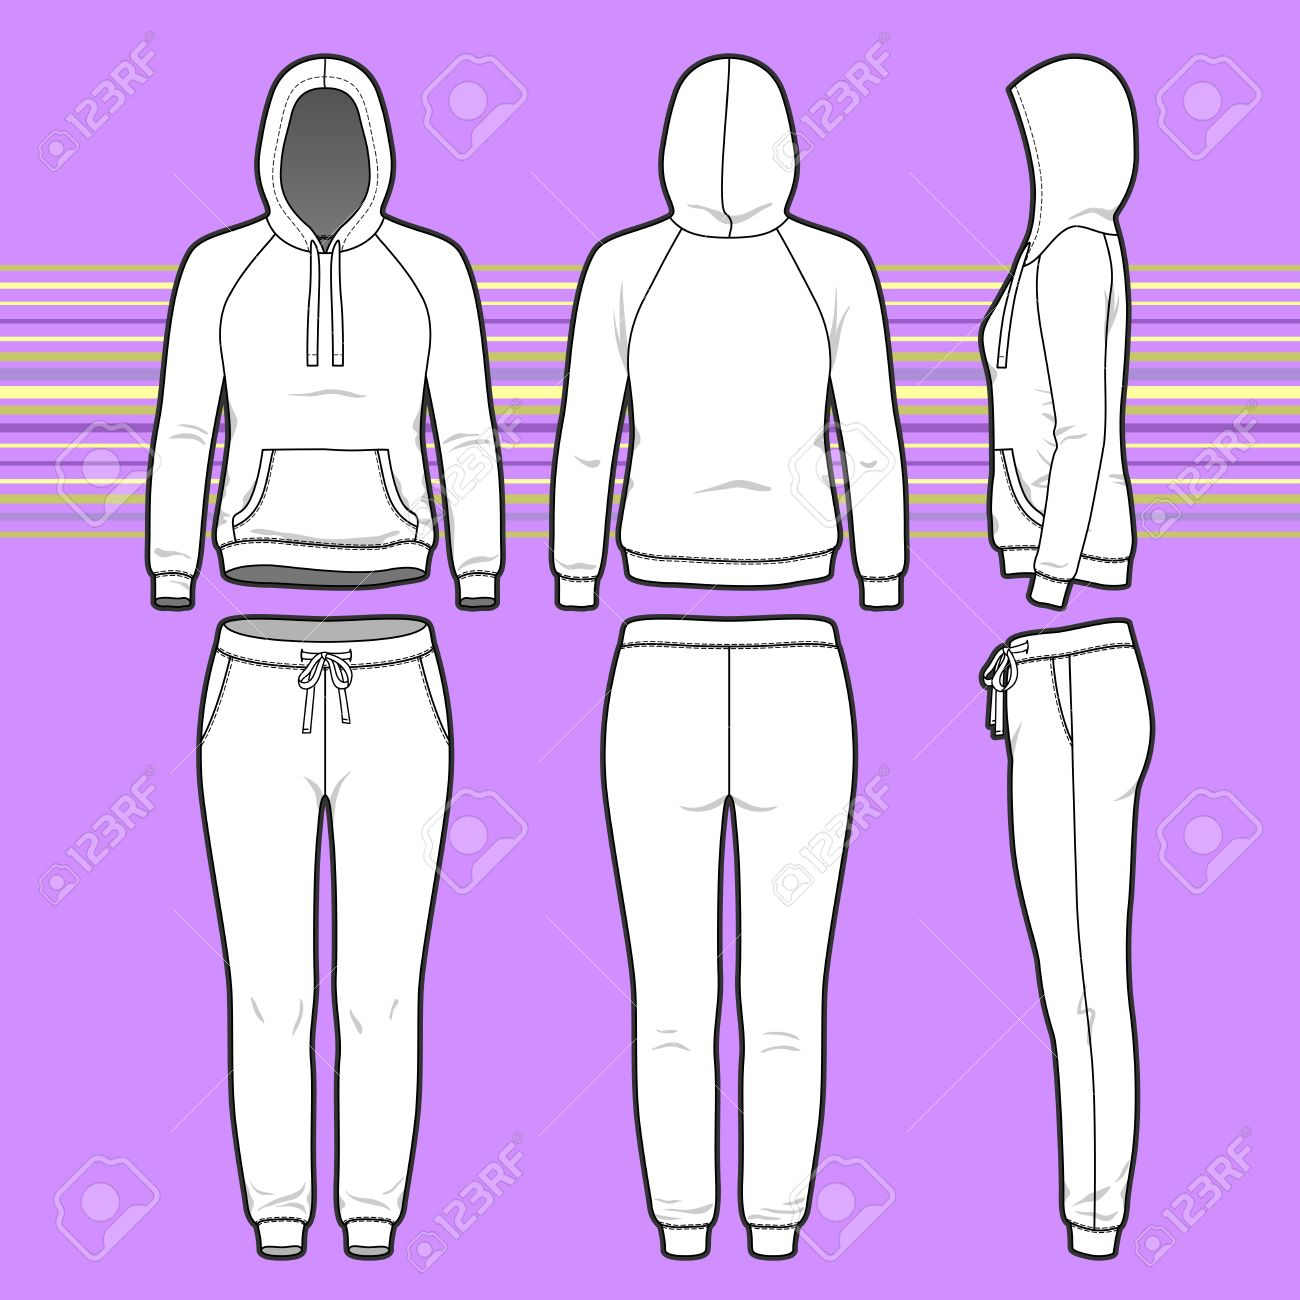 Front Back And Side Views Of Women S Clothing Set Blank Templates Royalty Free Cliparts Vectors And Stock Illustration Image 35934187